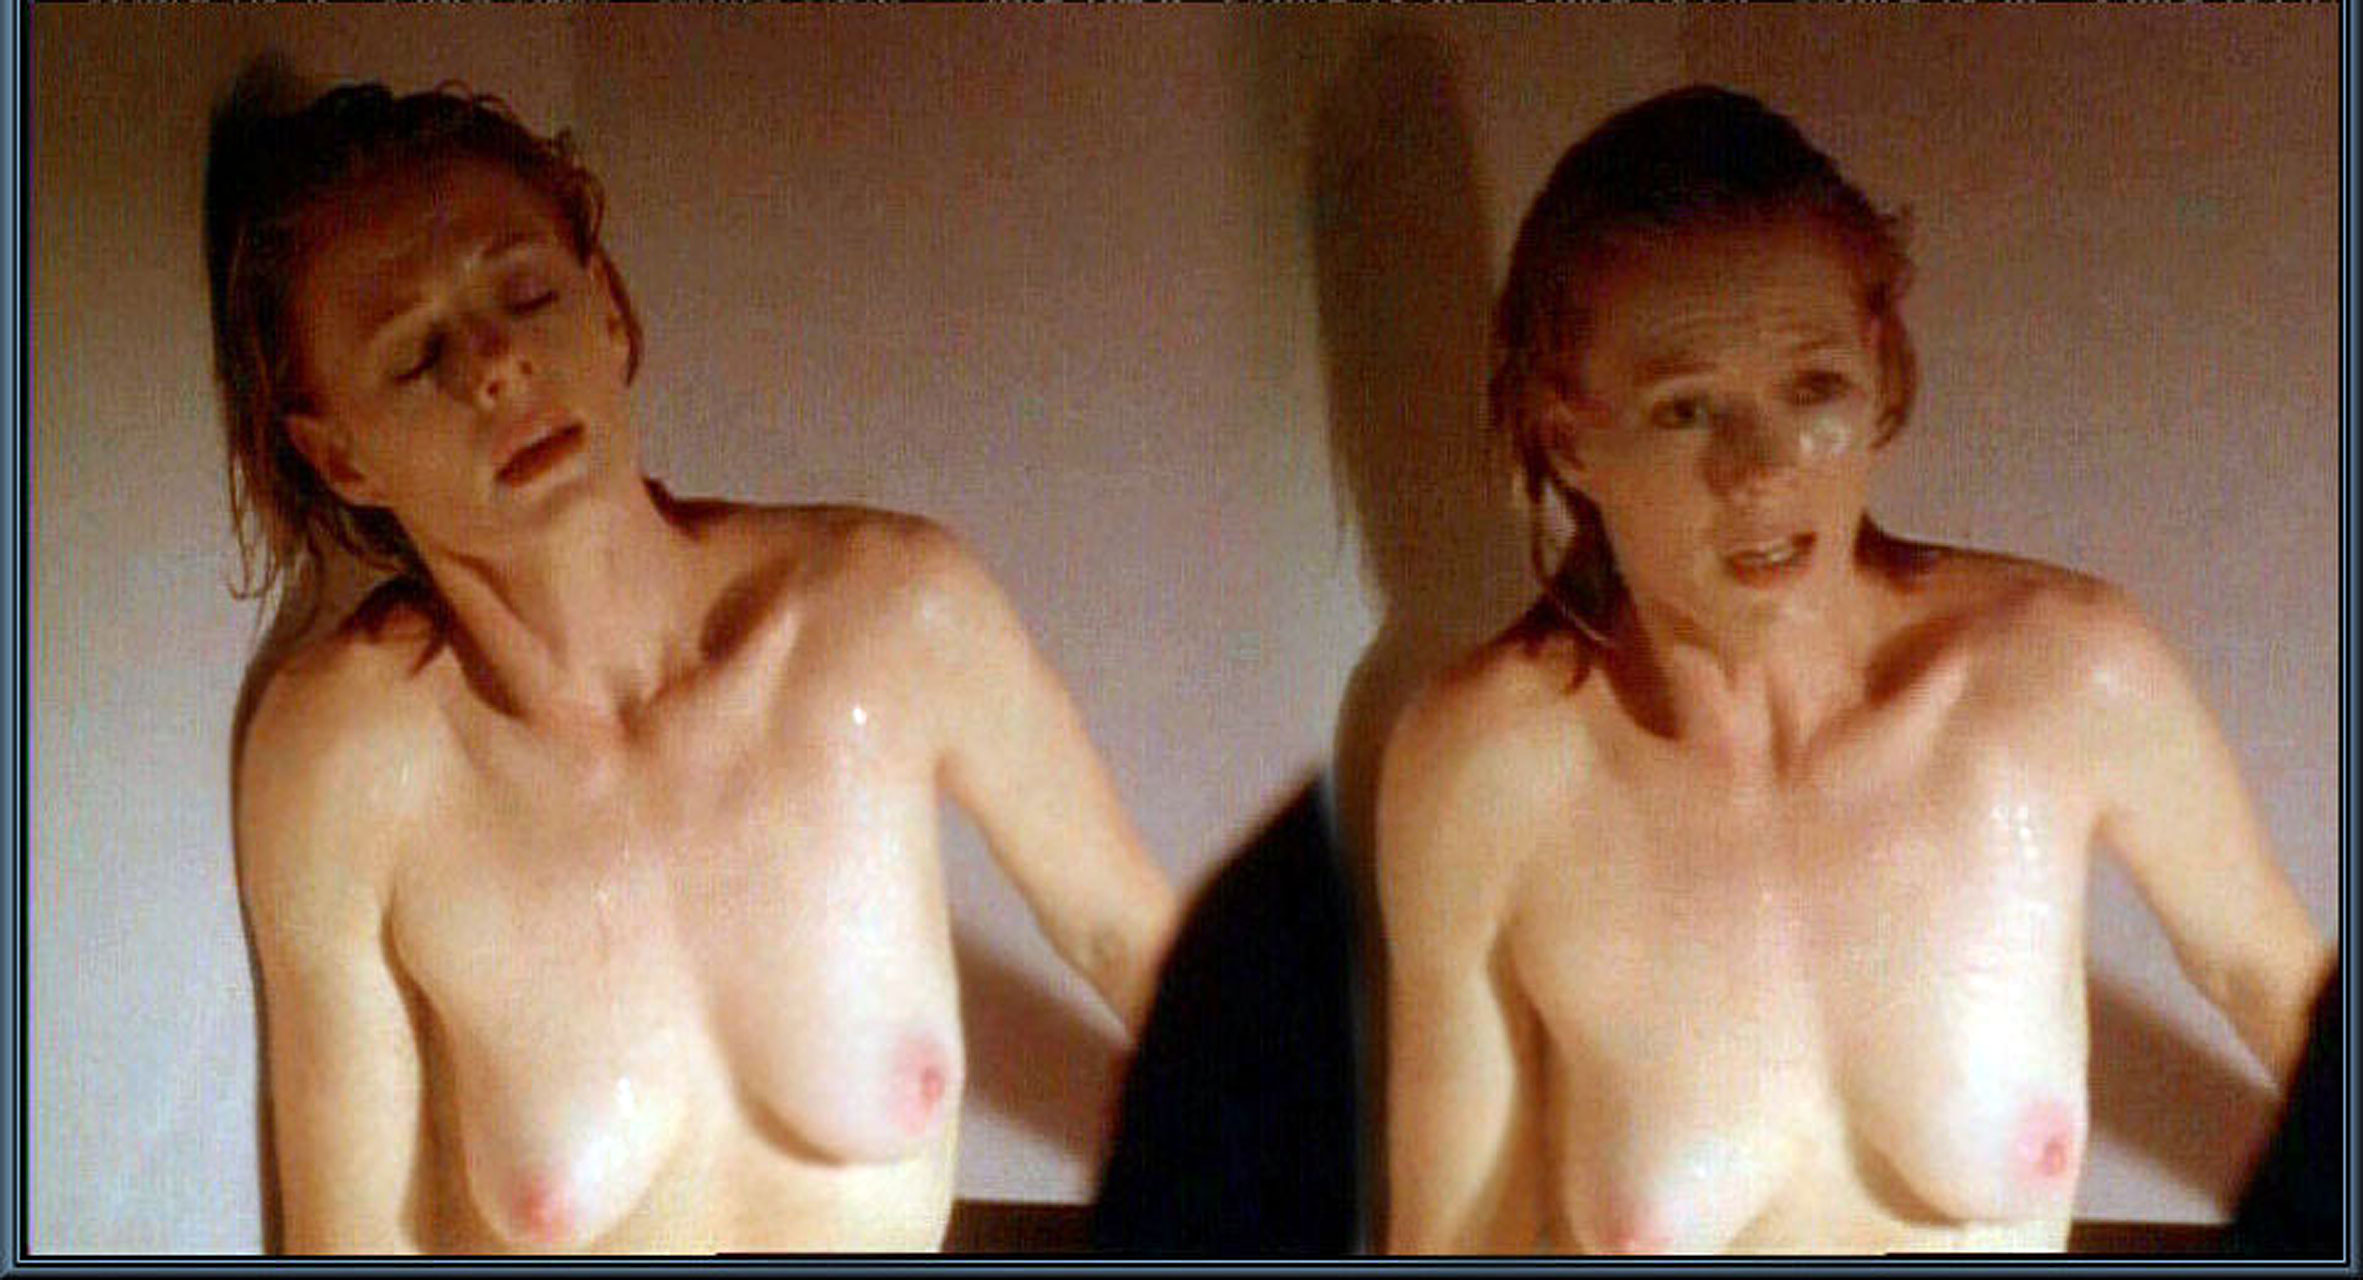 More Hot Pictures From Marg Helgenberger Nude Pics And Videos Se Tape